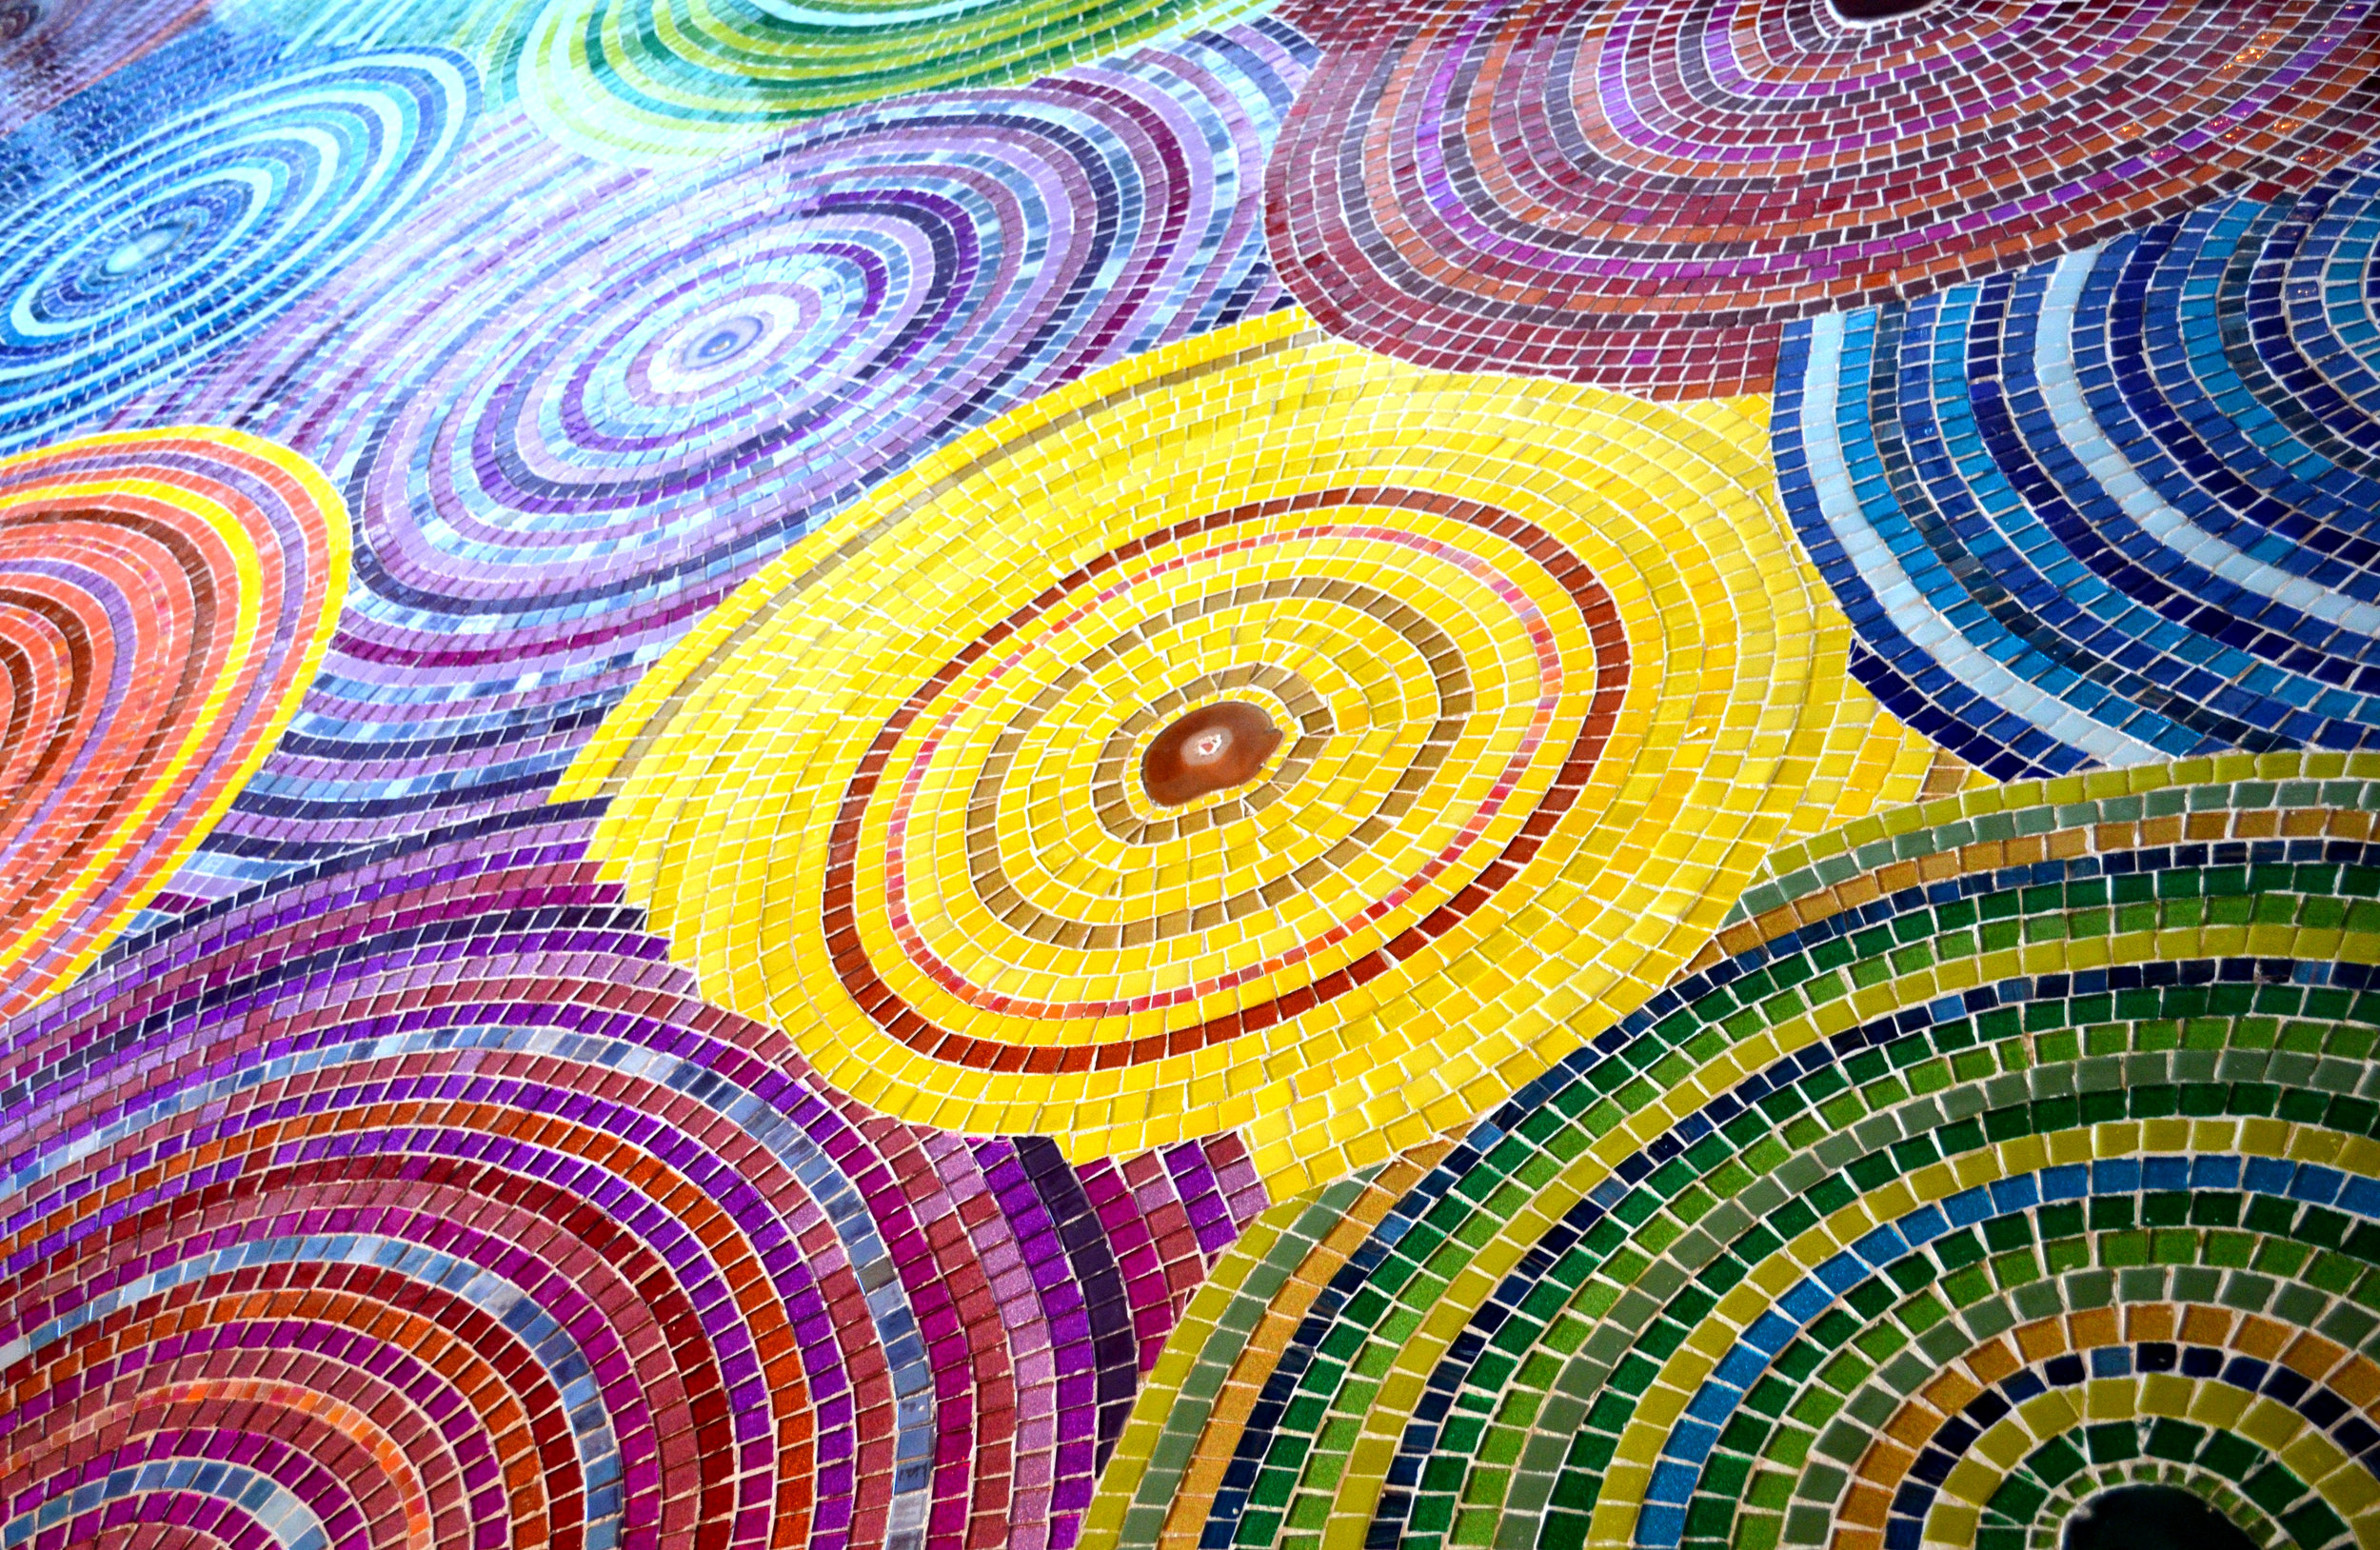 RAINBOW MOSAIC FLOOR using agate crystals and glass tiles at Phia Labs in Denver